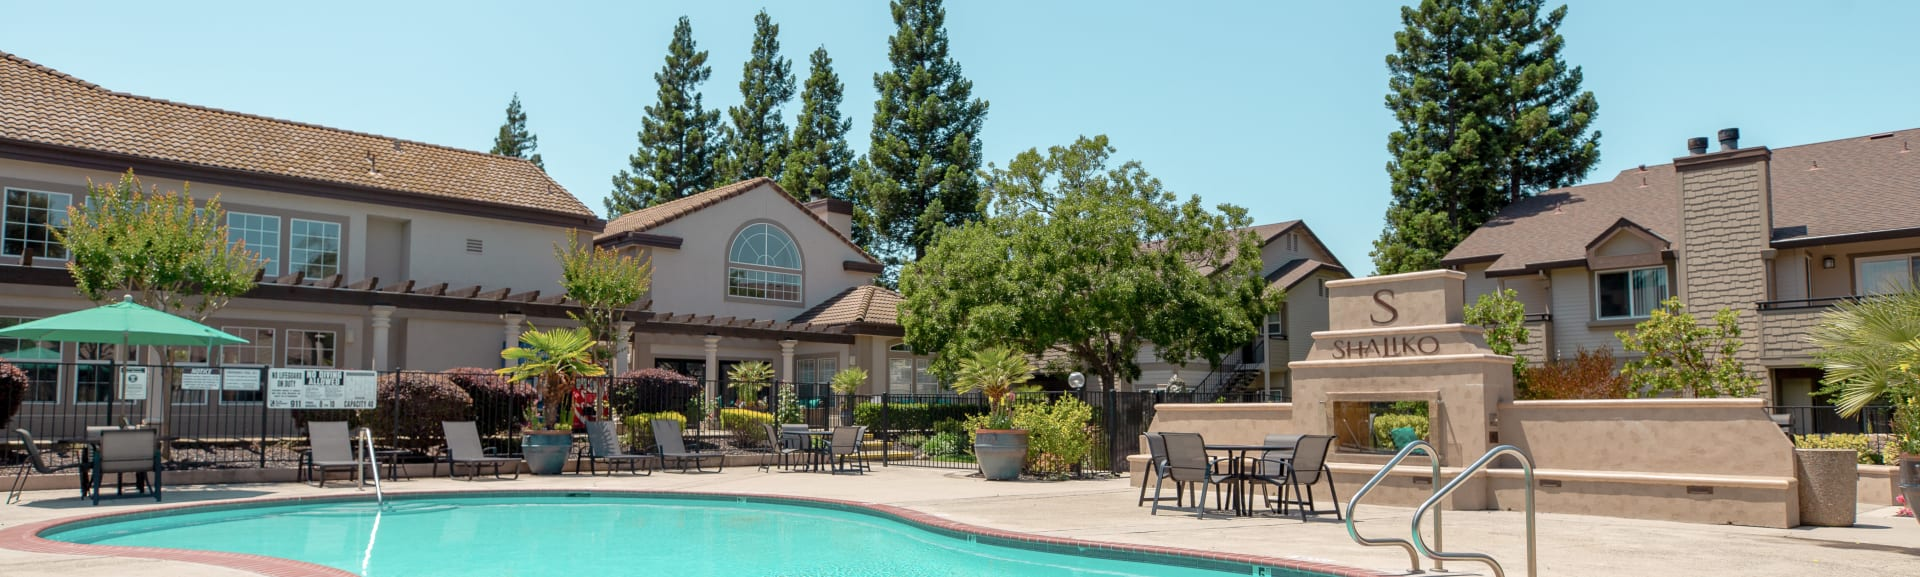 View photos of our luxurious property at Shaliko in Rocklin, California